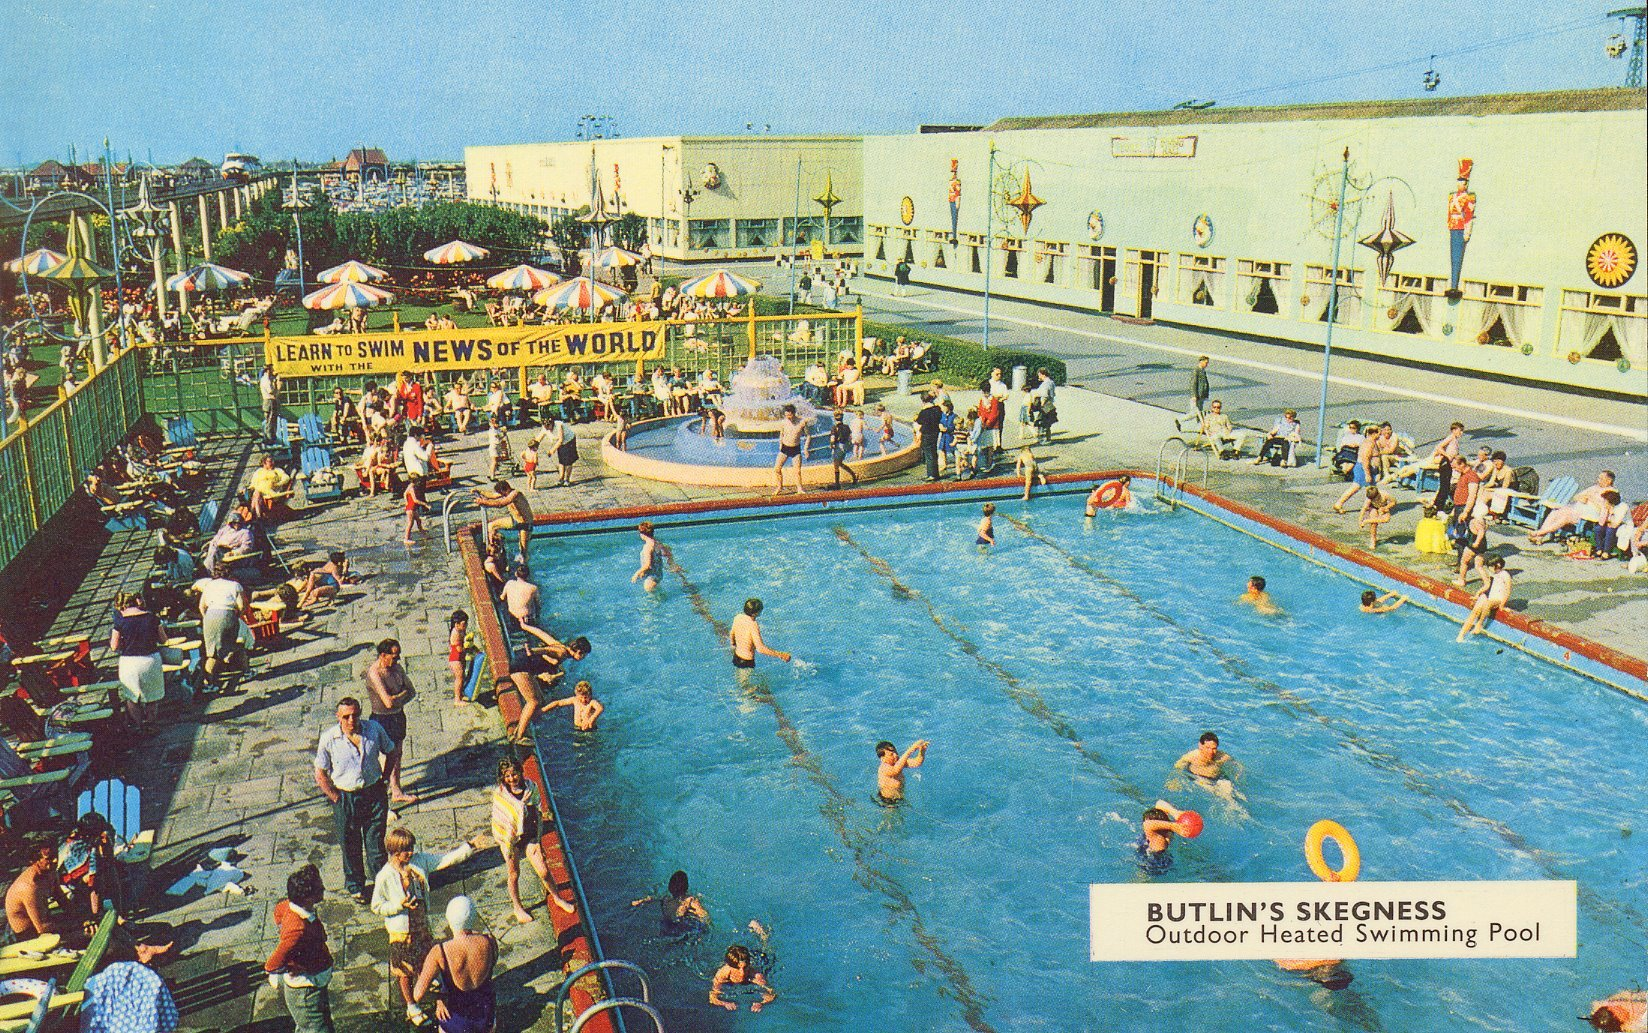 1000 Images About Butlins On Pinterest